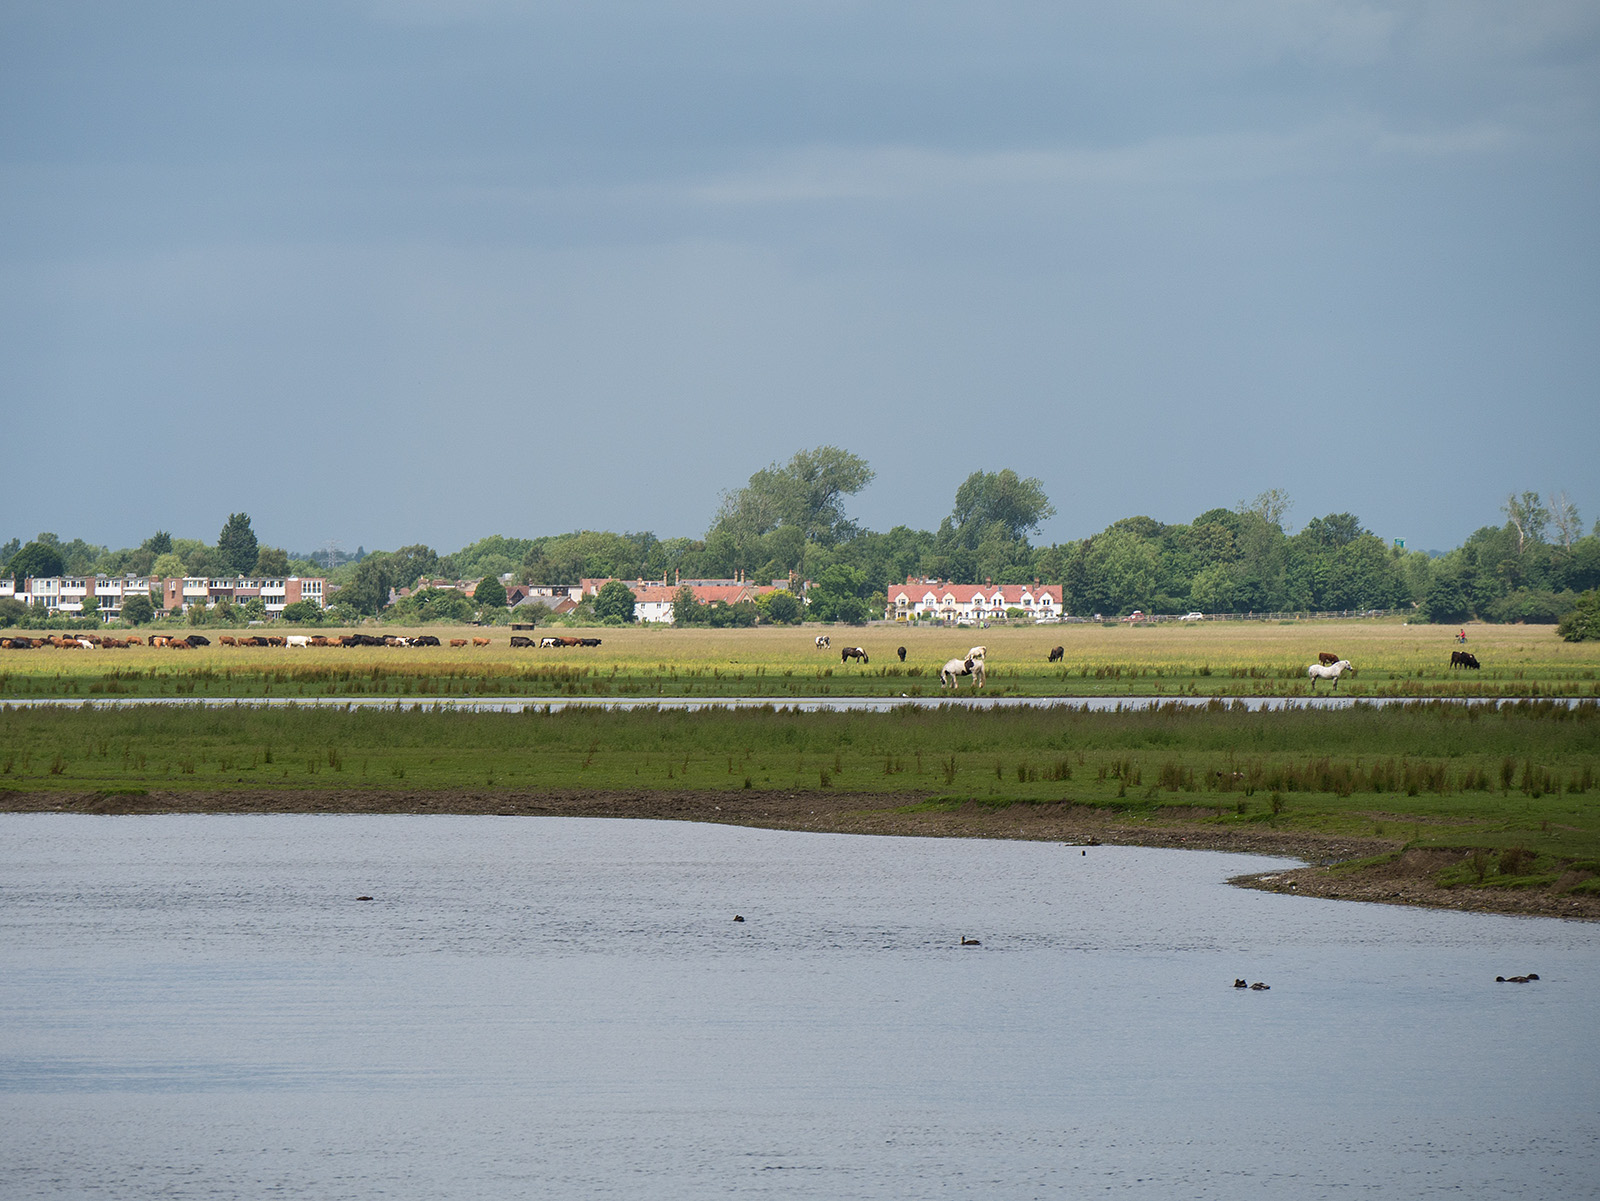 Cattle frazing on Port Meadow